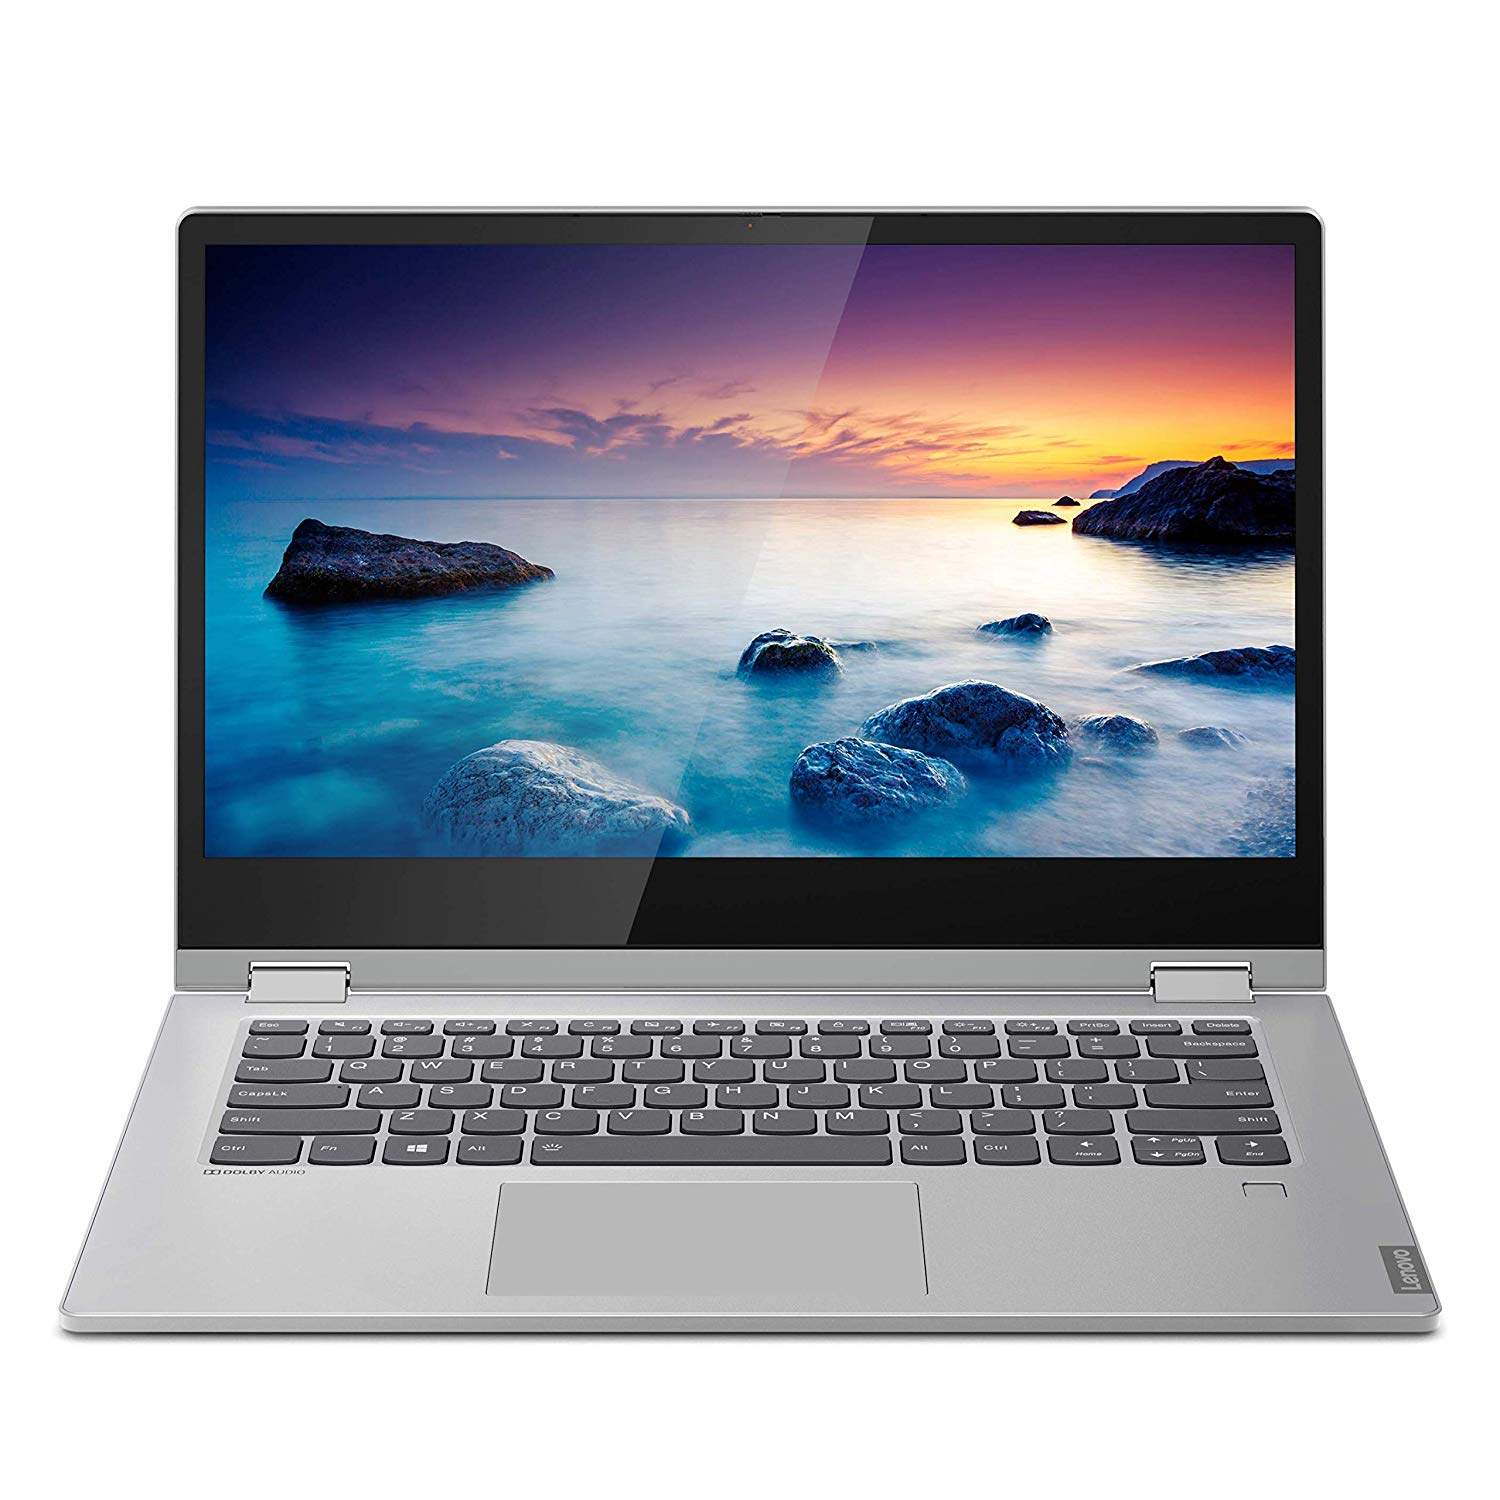 Lenovo Ideapad C340 Intel Core I3 8th Gen 14- FHD 2-in-1 Touchscreen Laptop ( 4GB RAM/ 256 GB SSD / Windows 10 / Office Home And Student 2019 / 1.65 Kg / Platinum ), 81N400CXIN